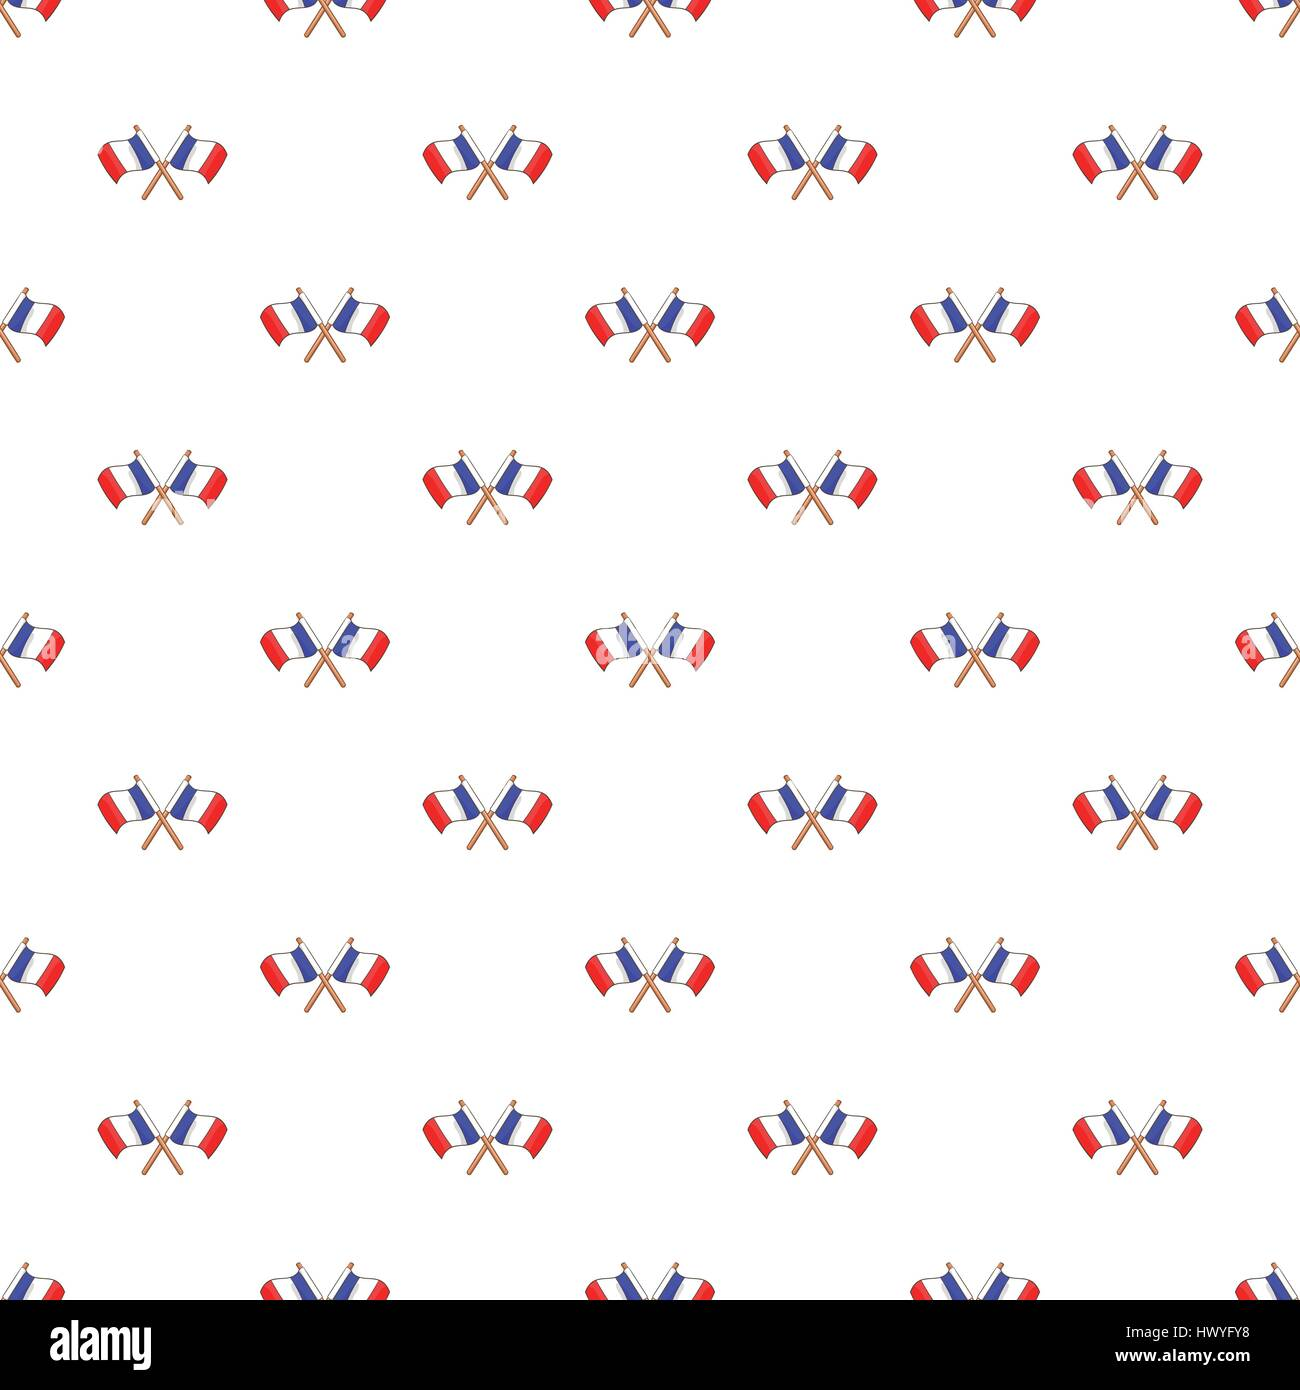 French flag pattern, cartoon style - Stock Image